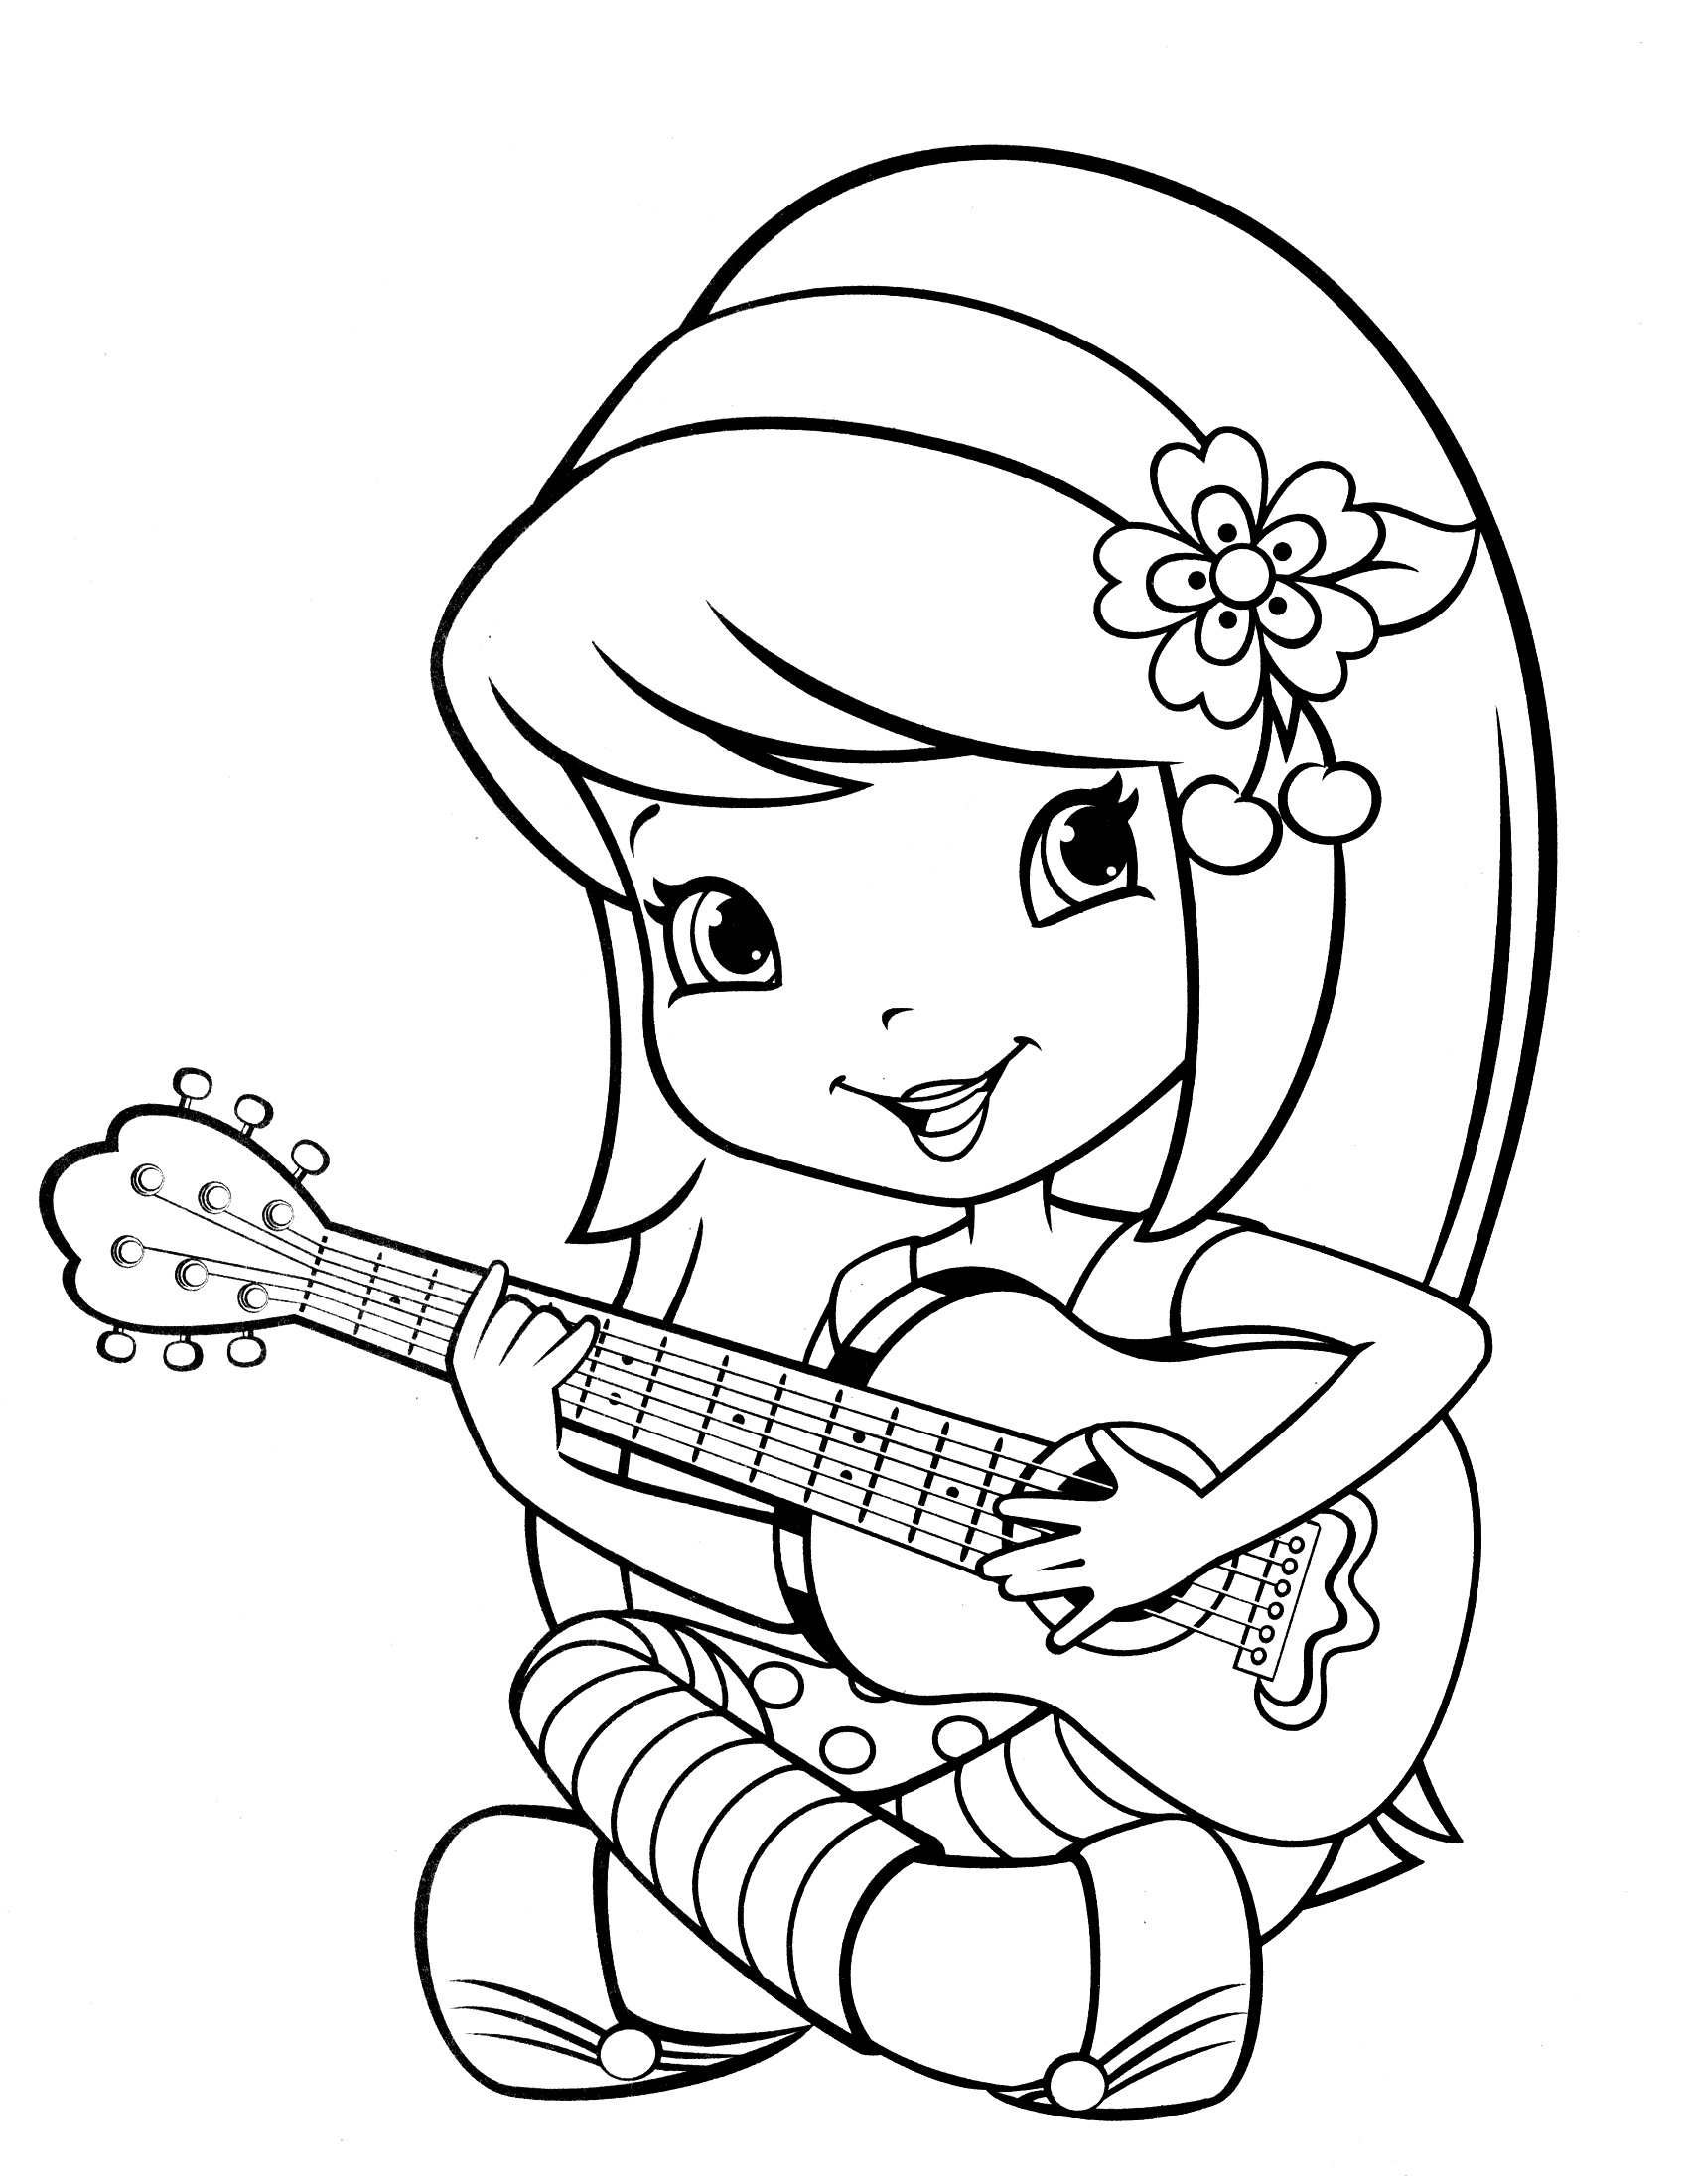 Strawberry Shortcake Coloring Pages for Preschoolers